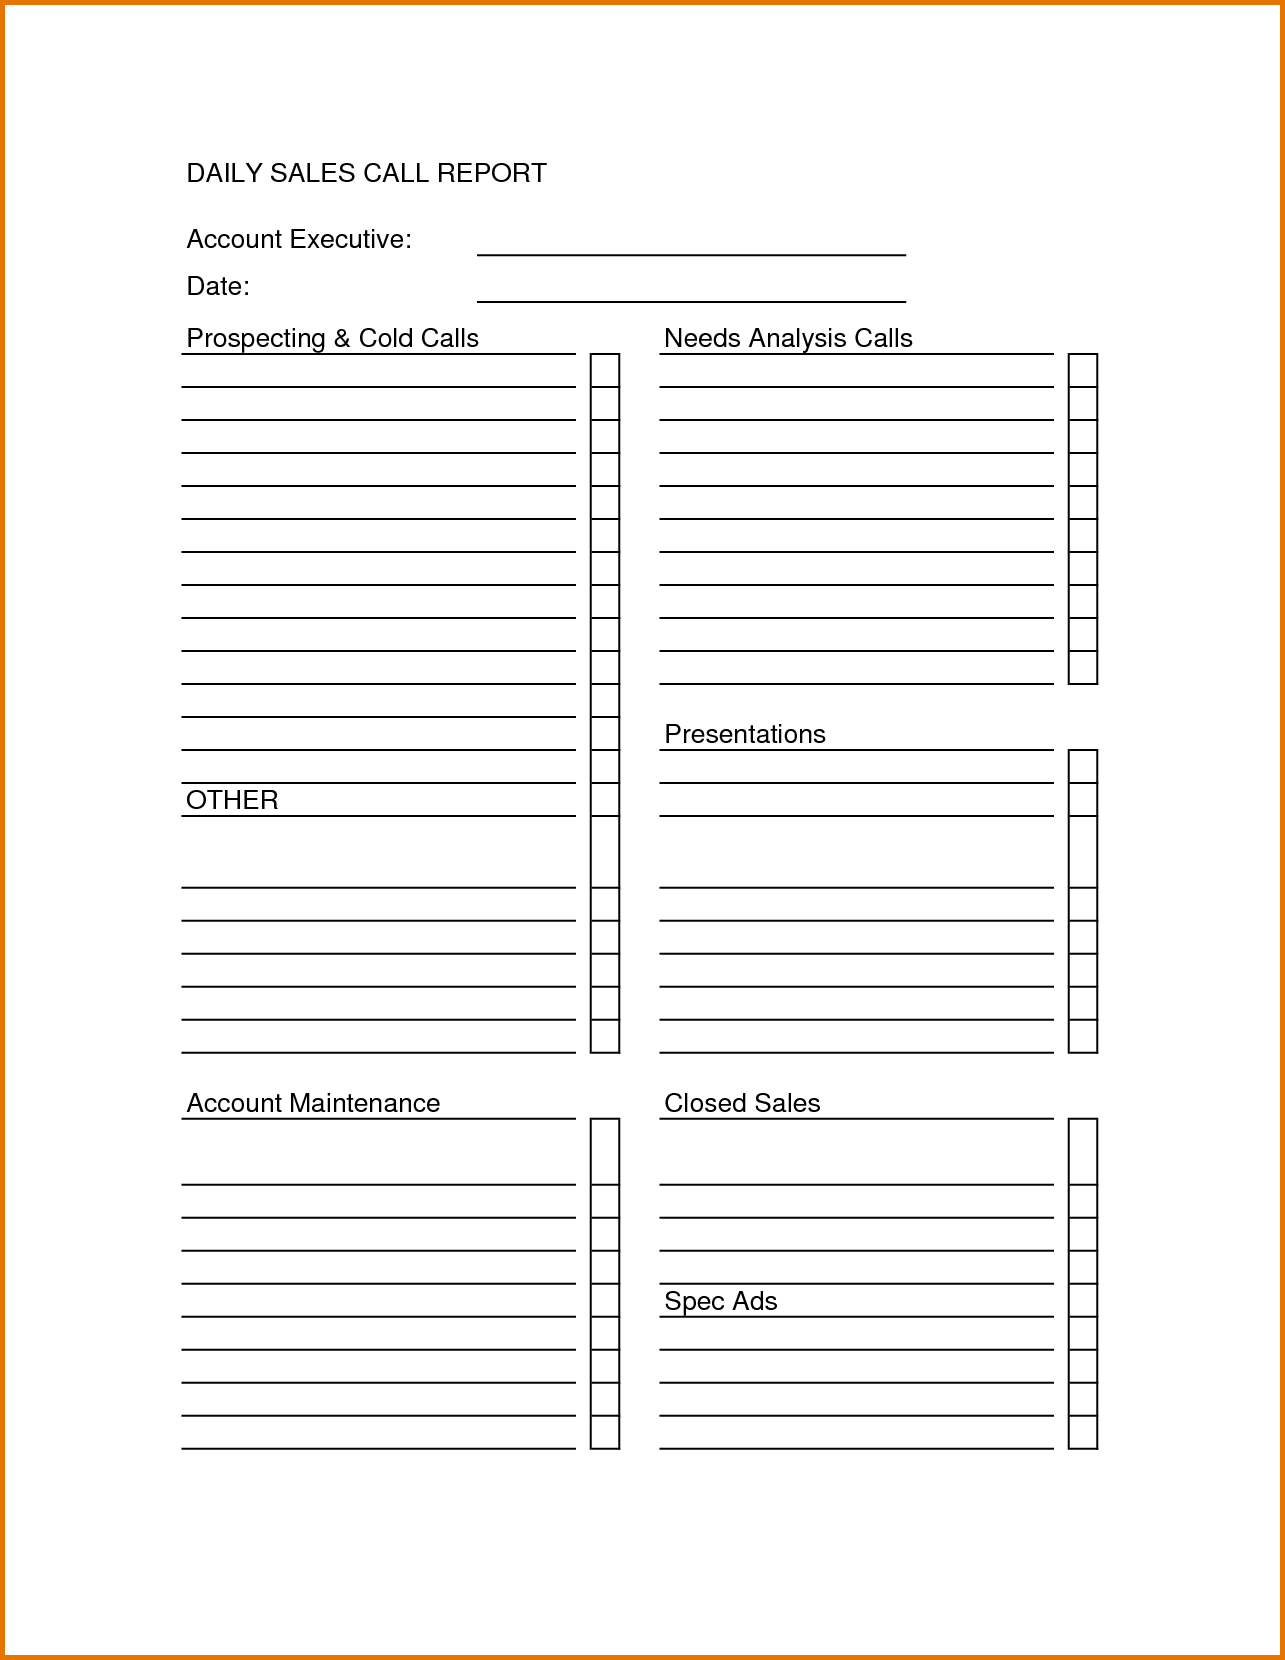 sales customer profile template - sales call sheet template sales call report sheet forms